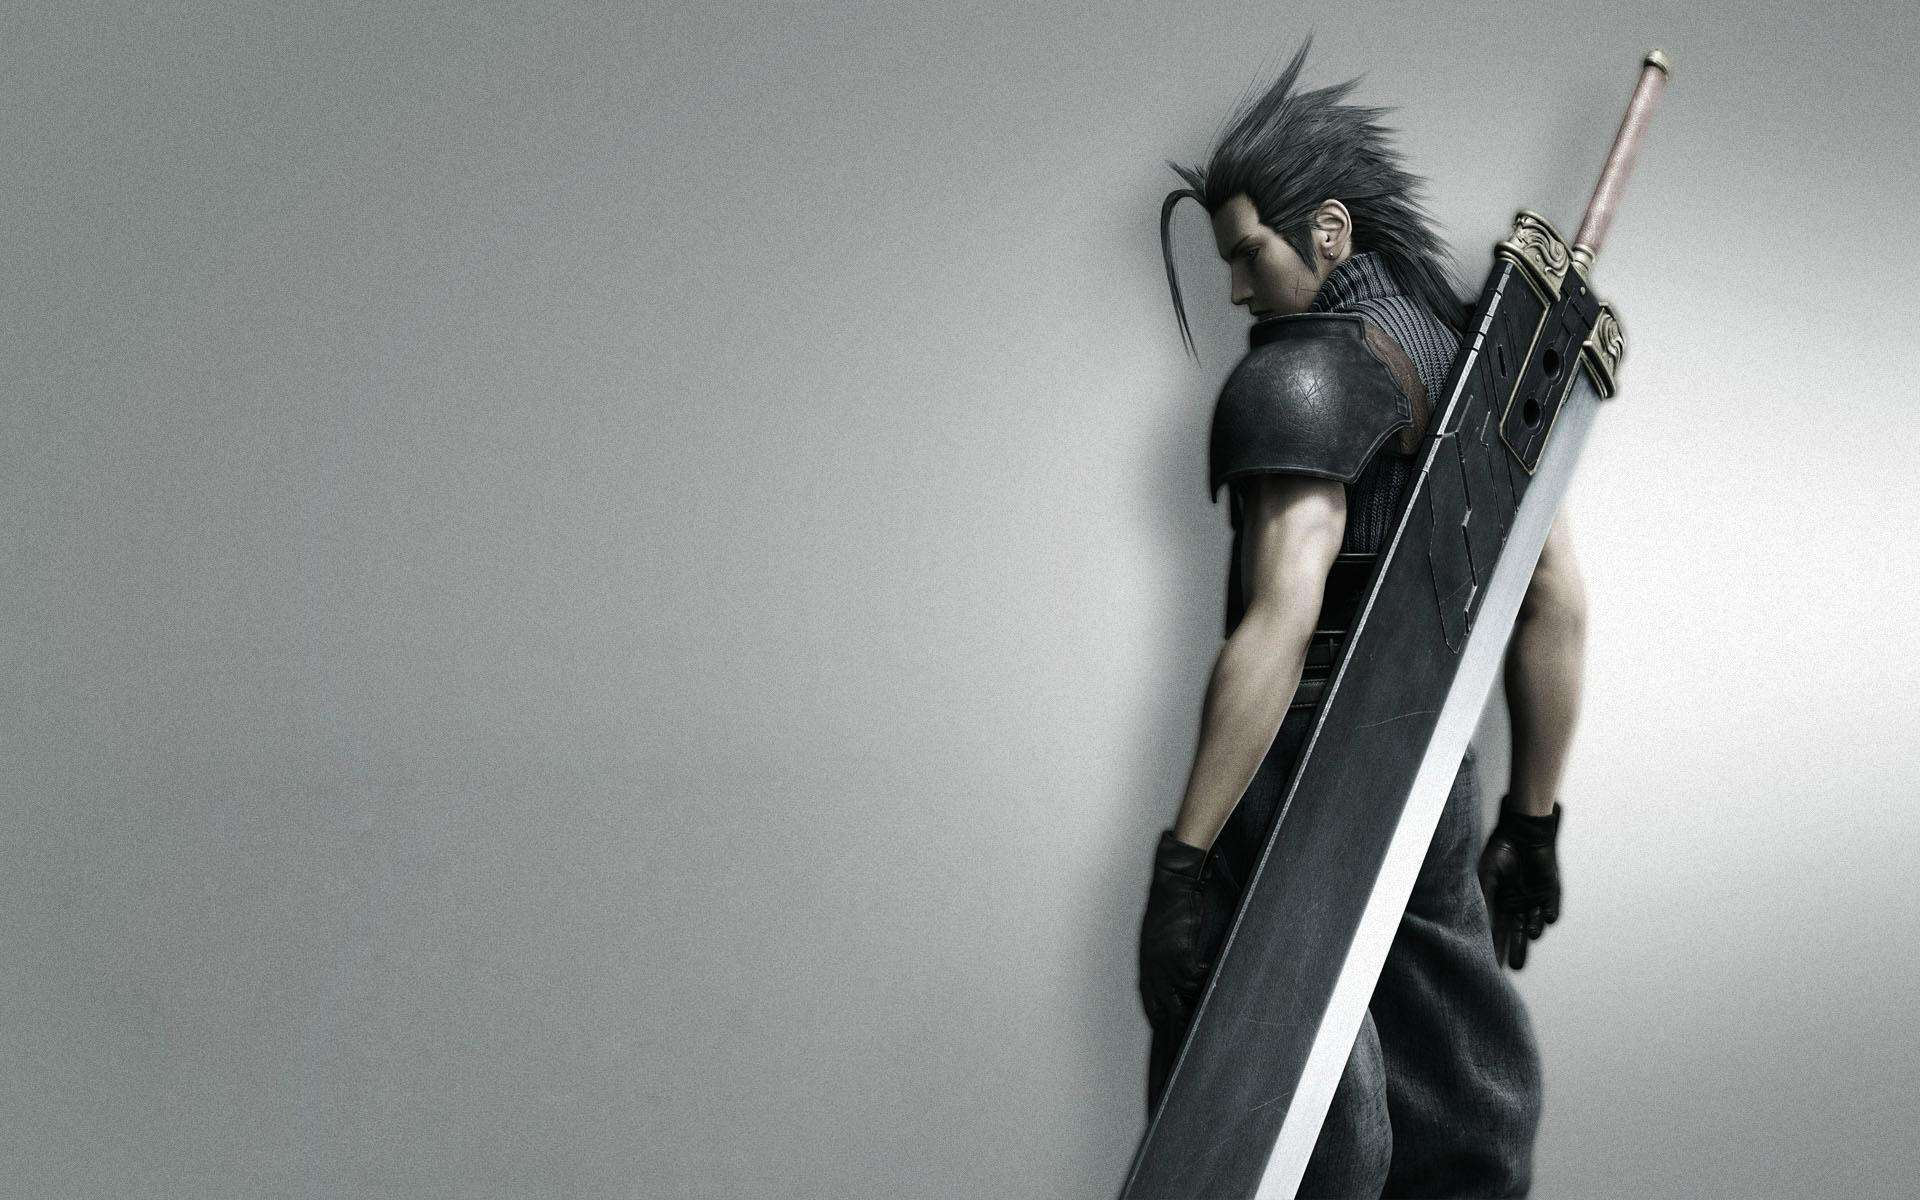 Final Fantasy Video Game Wallpaper 020